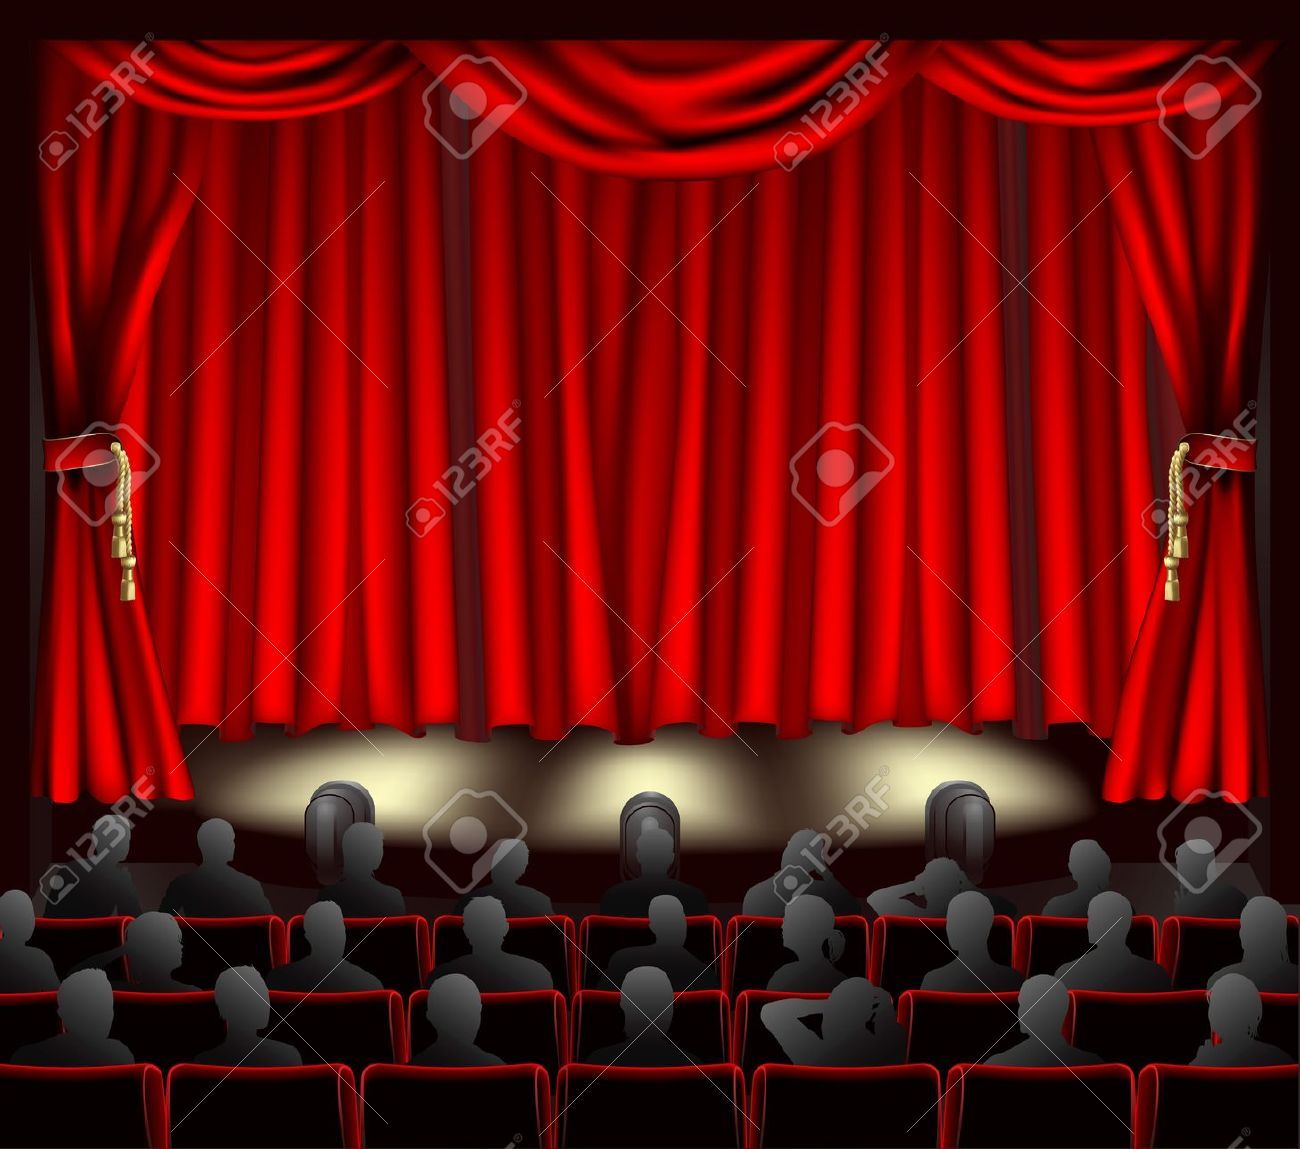 Audience clipart school auditorium. Pin by caridad barranco